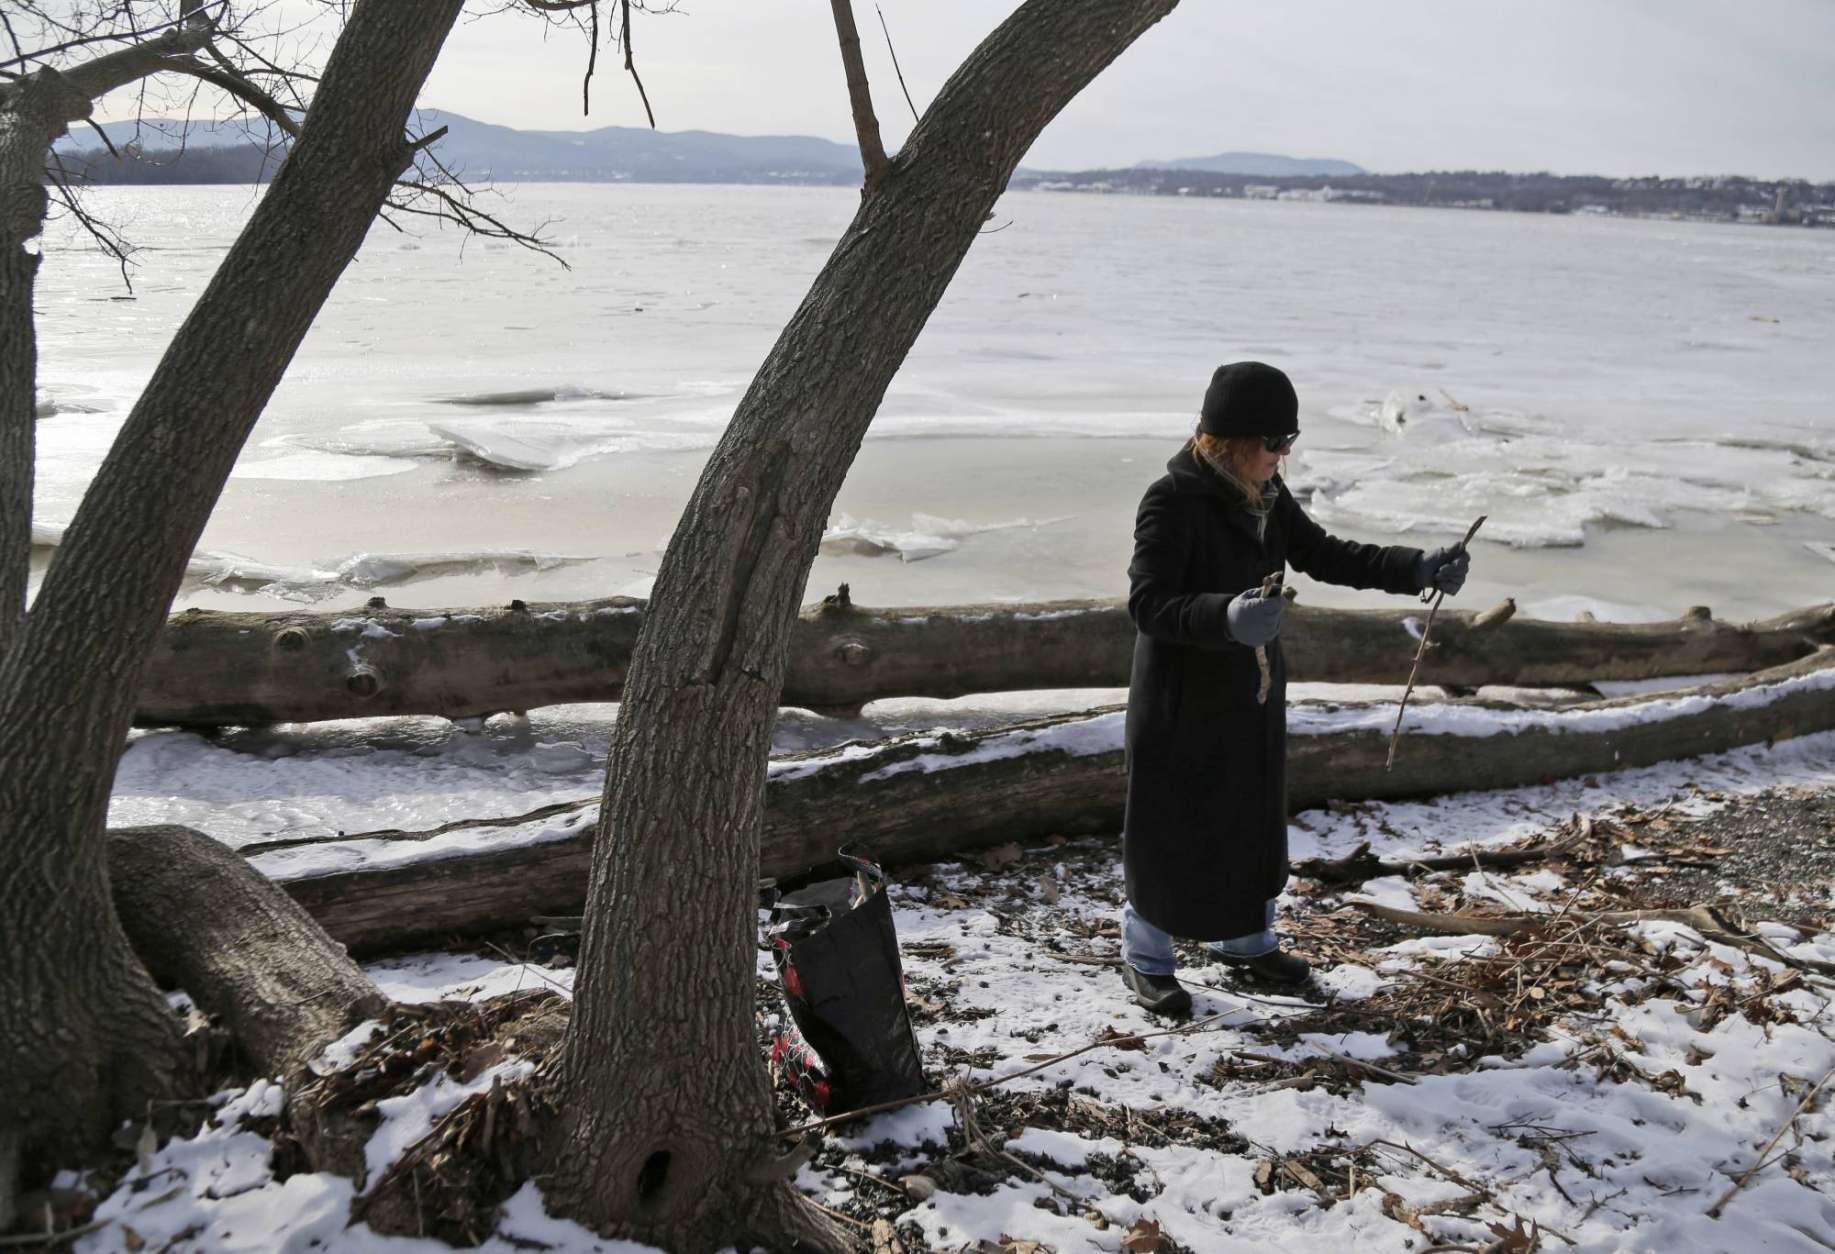 Valerie Hinkle collects kindling along the edge of the partially frozen Hudson River in Beacon, N.Y., Wednesday, Jan. 3, 2018. Hinkle was concerned that in incoming storm might knock out the power and she wanted to able to build a fire. Bitterly cold temperatures gripped much of the nation on Tuesday, testing the mettle of even winter-wise northerners and delivering a shock to those accustomed to far milder weather in the South. (AP Photo/Seth Wenig)